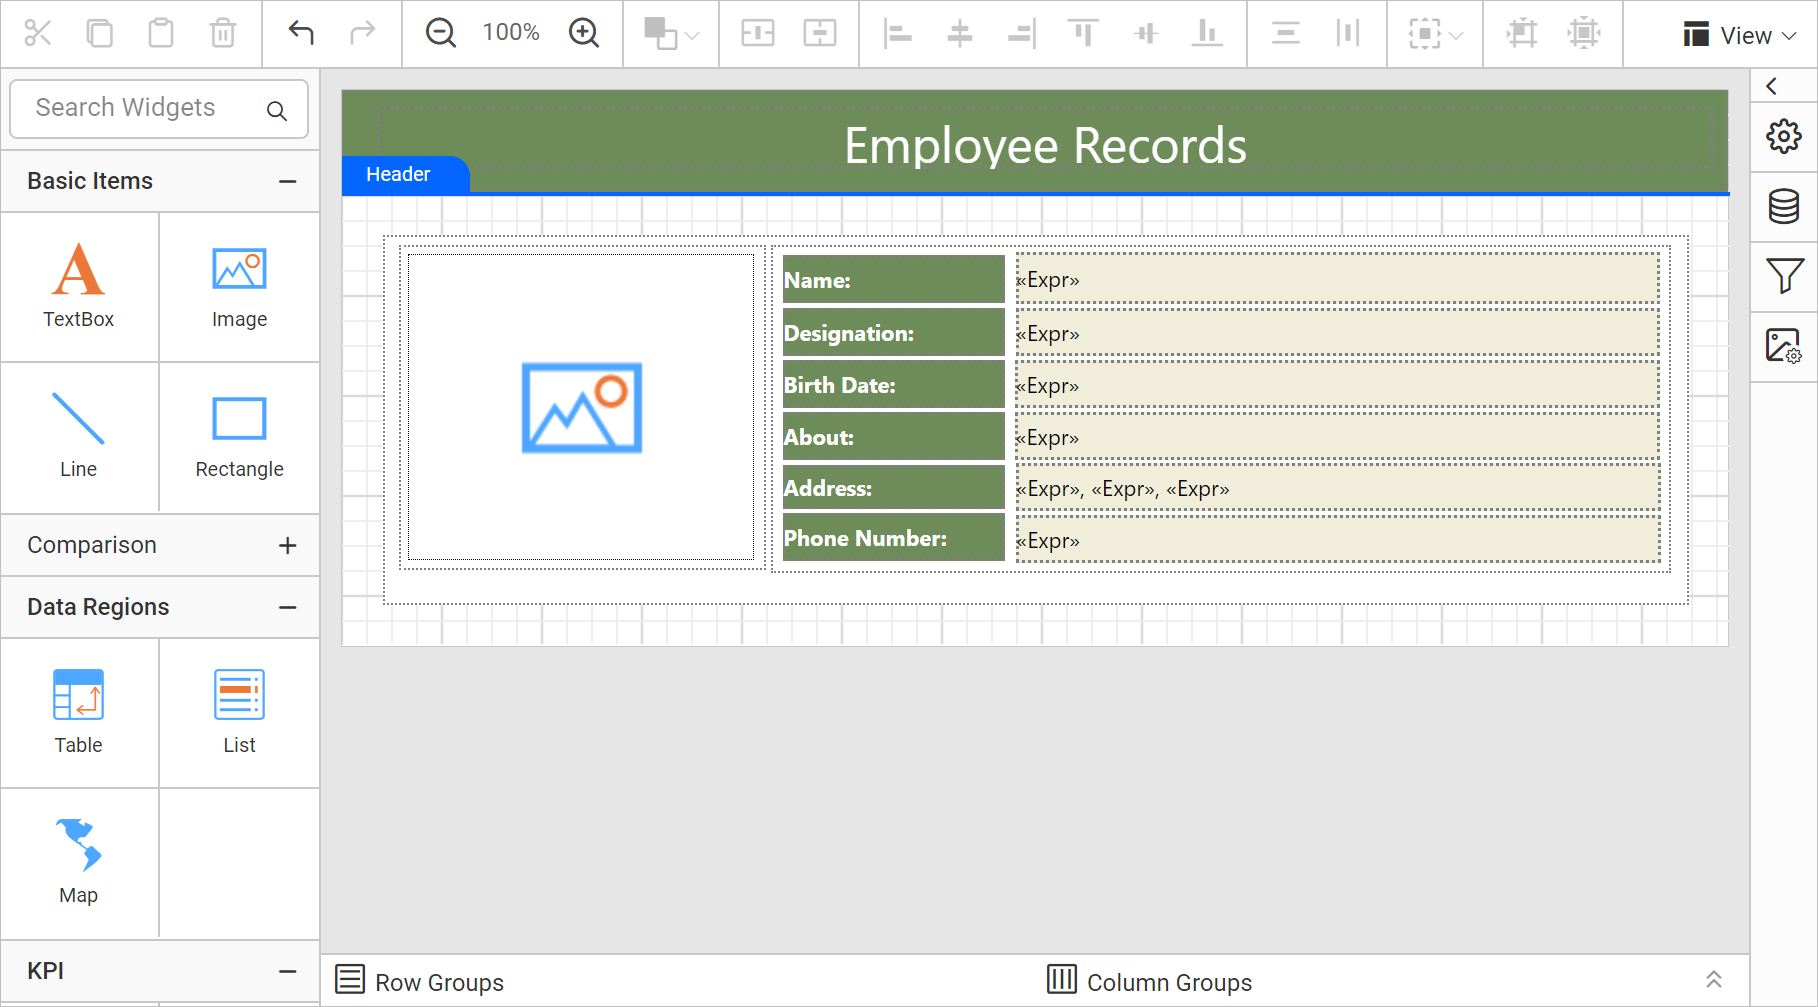 Design View: Employee Record in Mail Merge Format